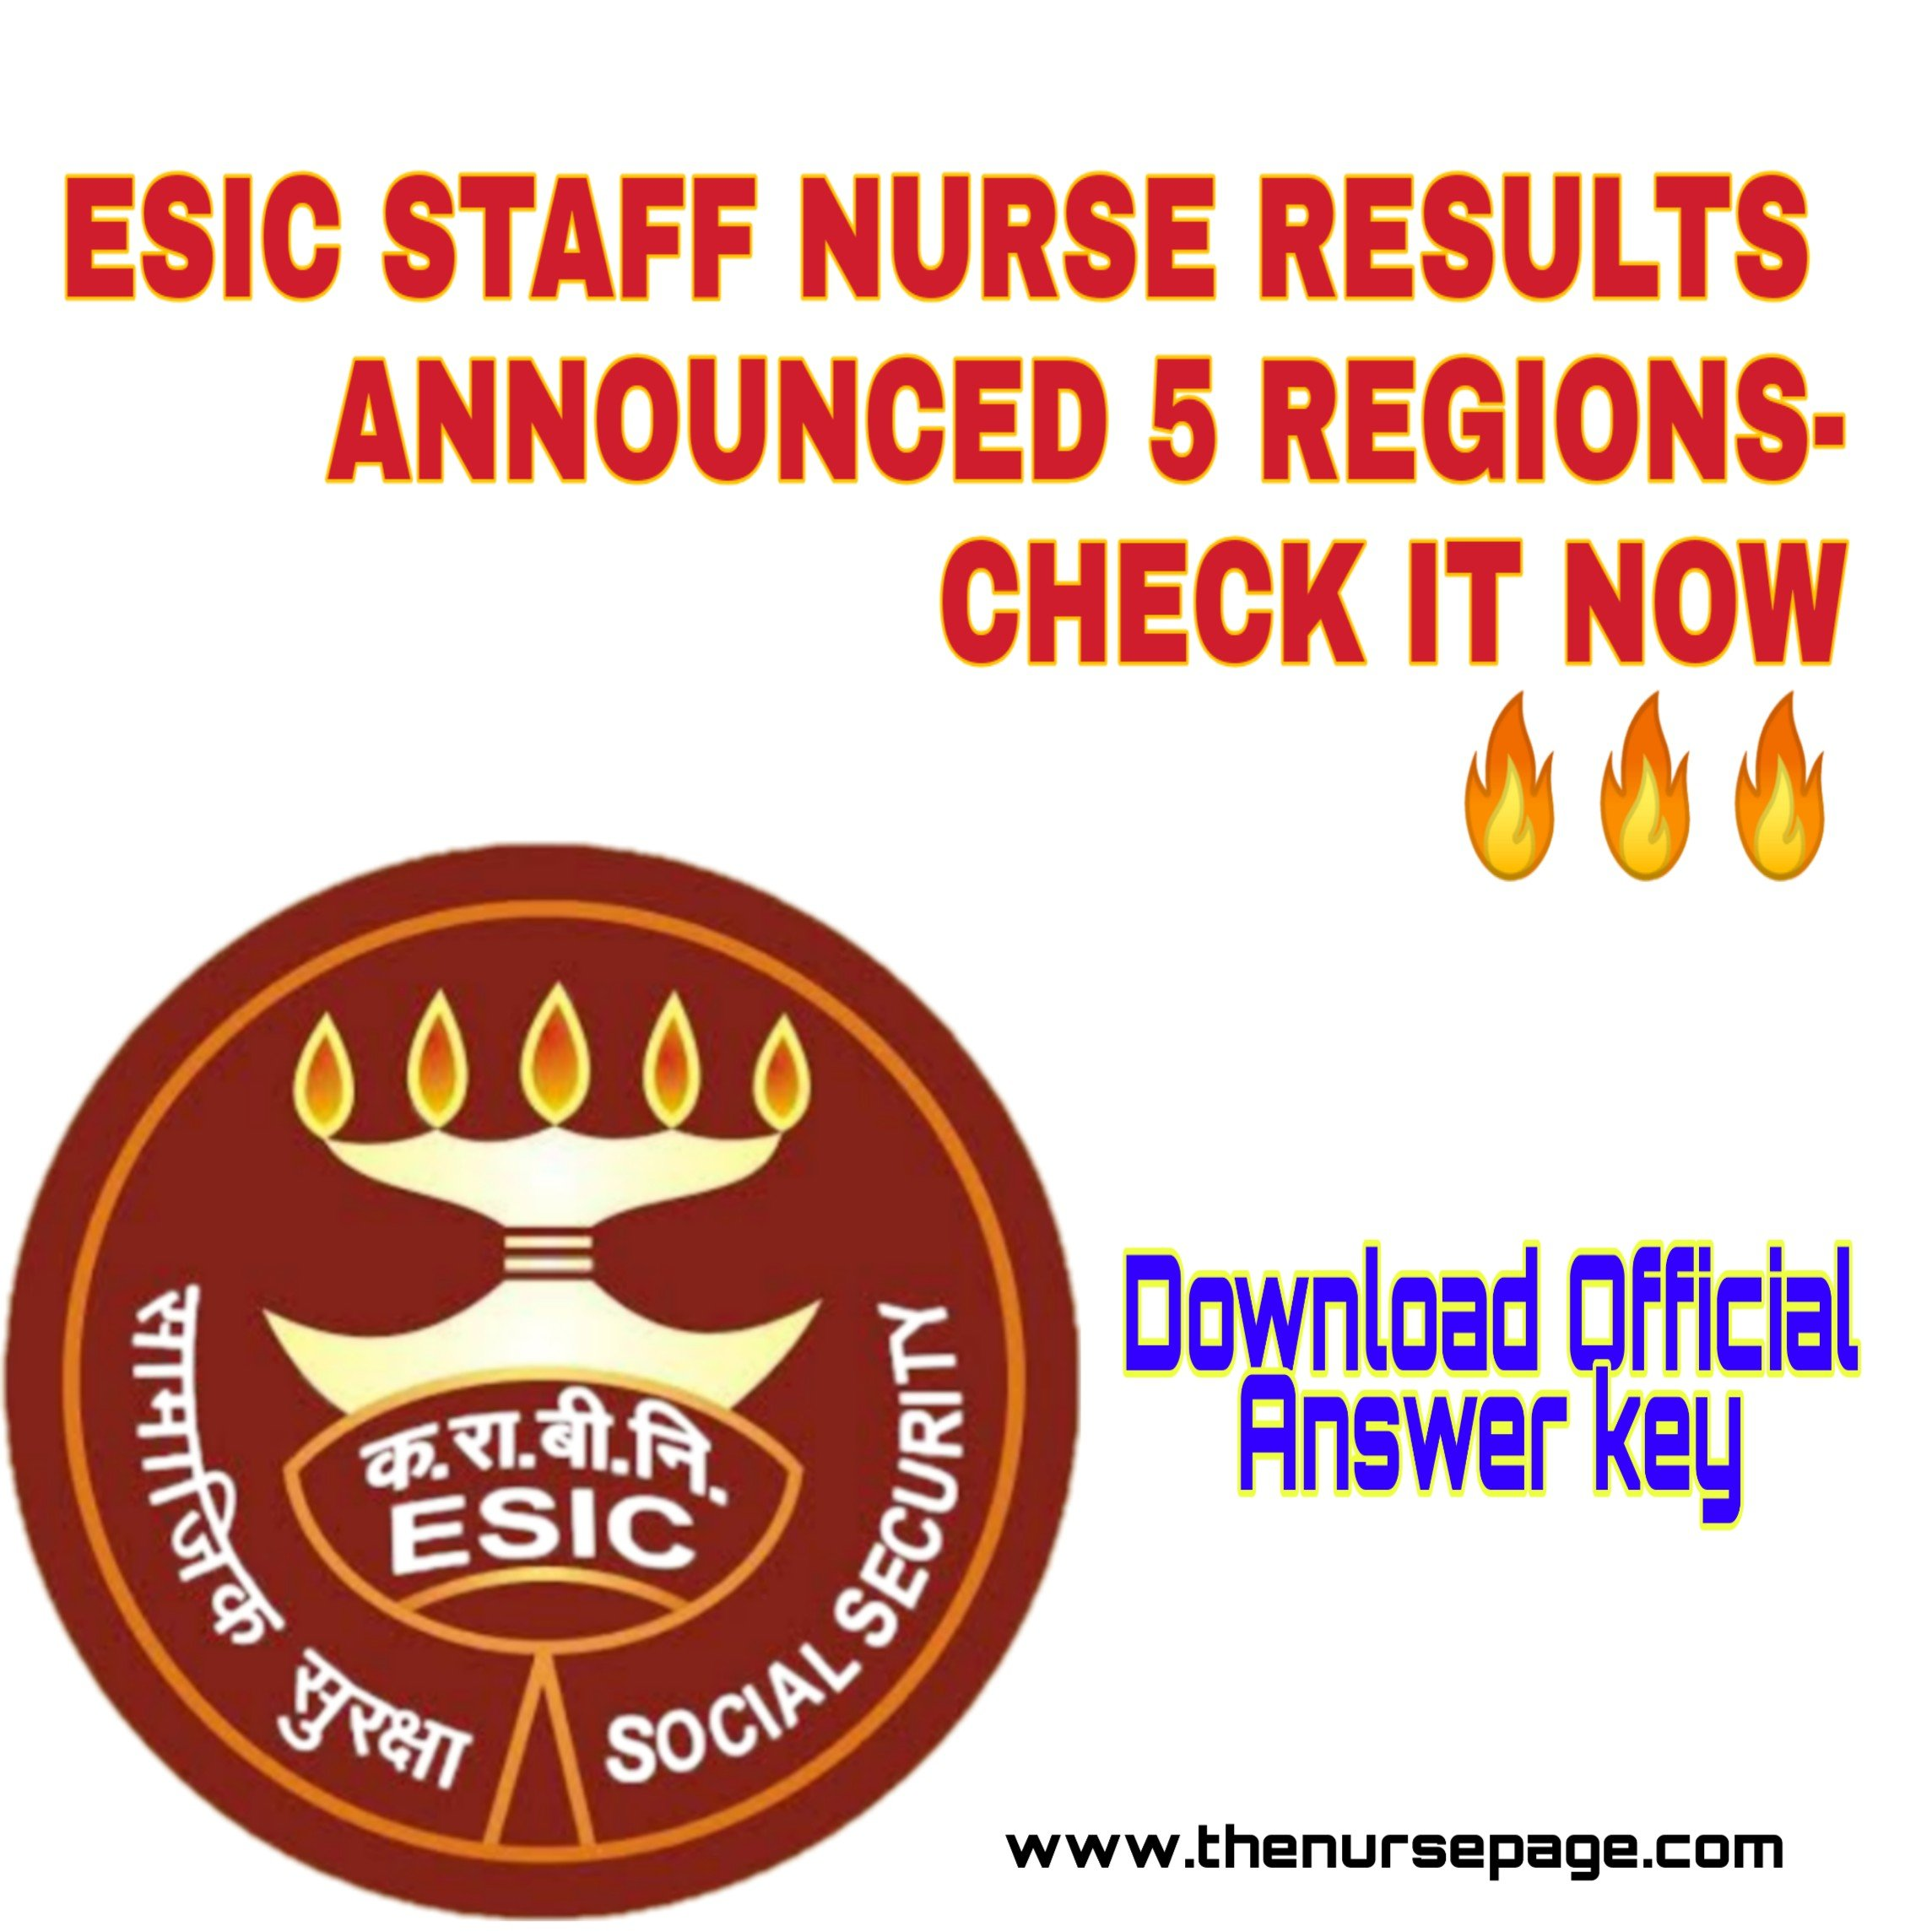 ESIC Staff Nurse Results Announced